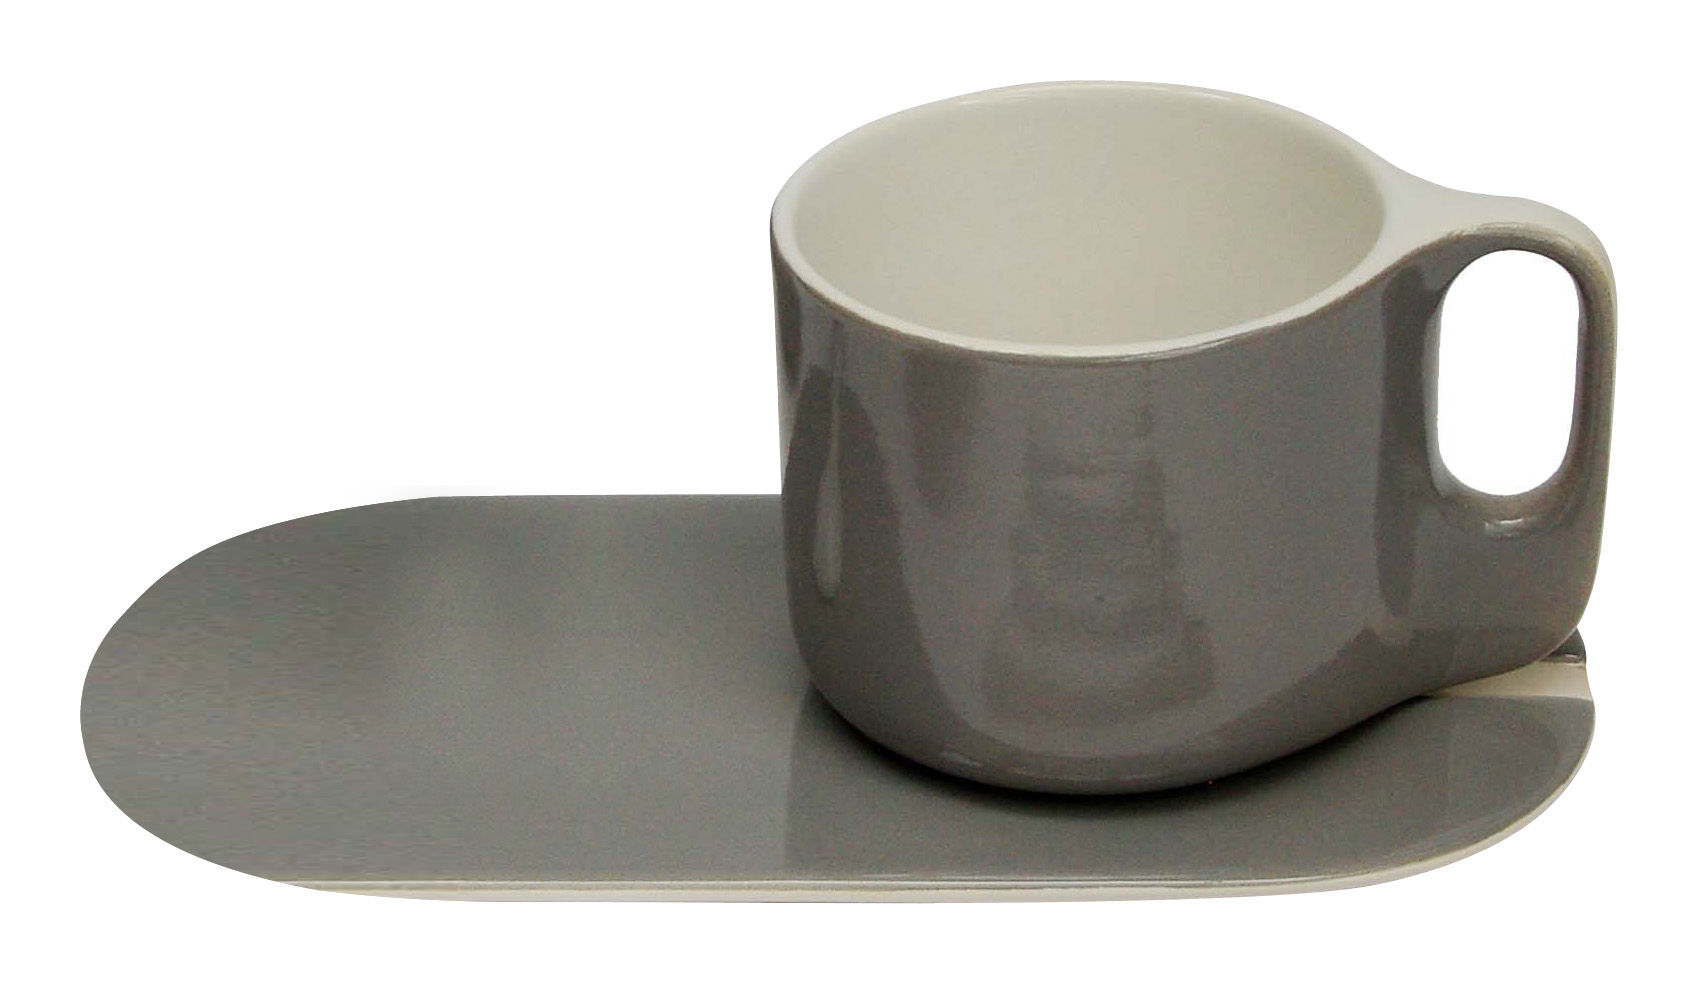 ti coffee cup with saucer grey white by sentou edition. Black Bedroom Furniture Sets. Home Design Ideas